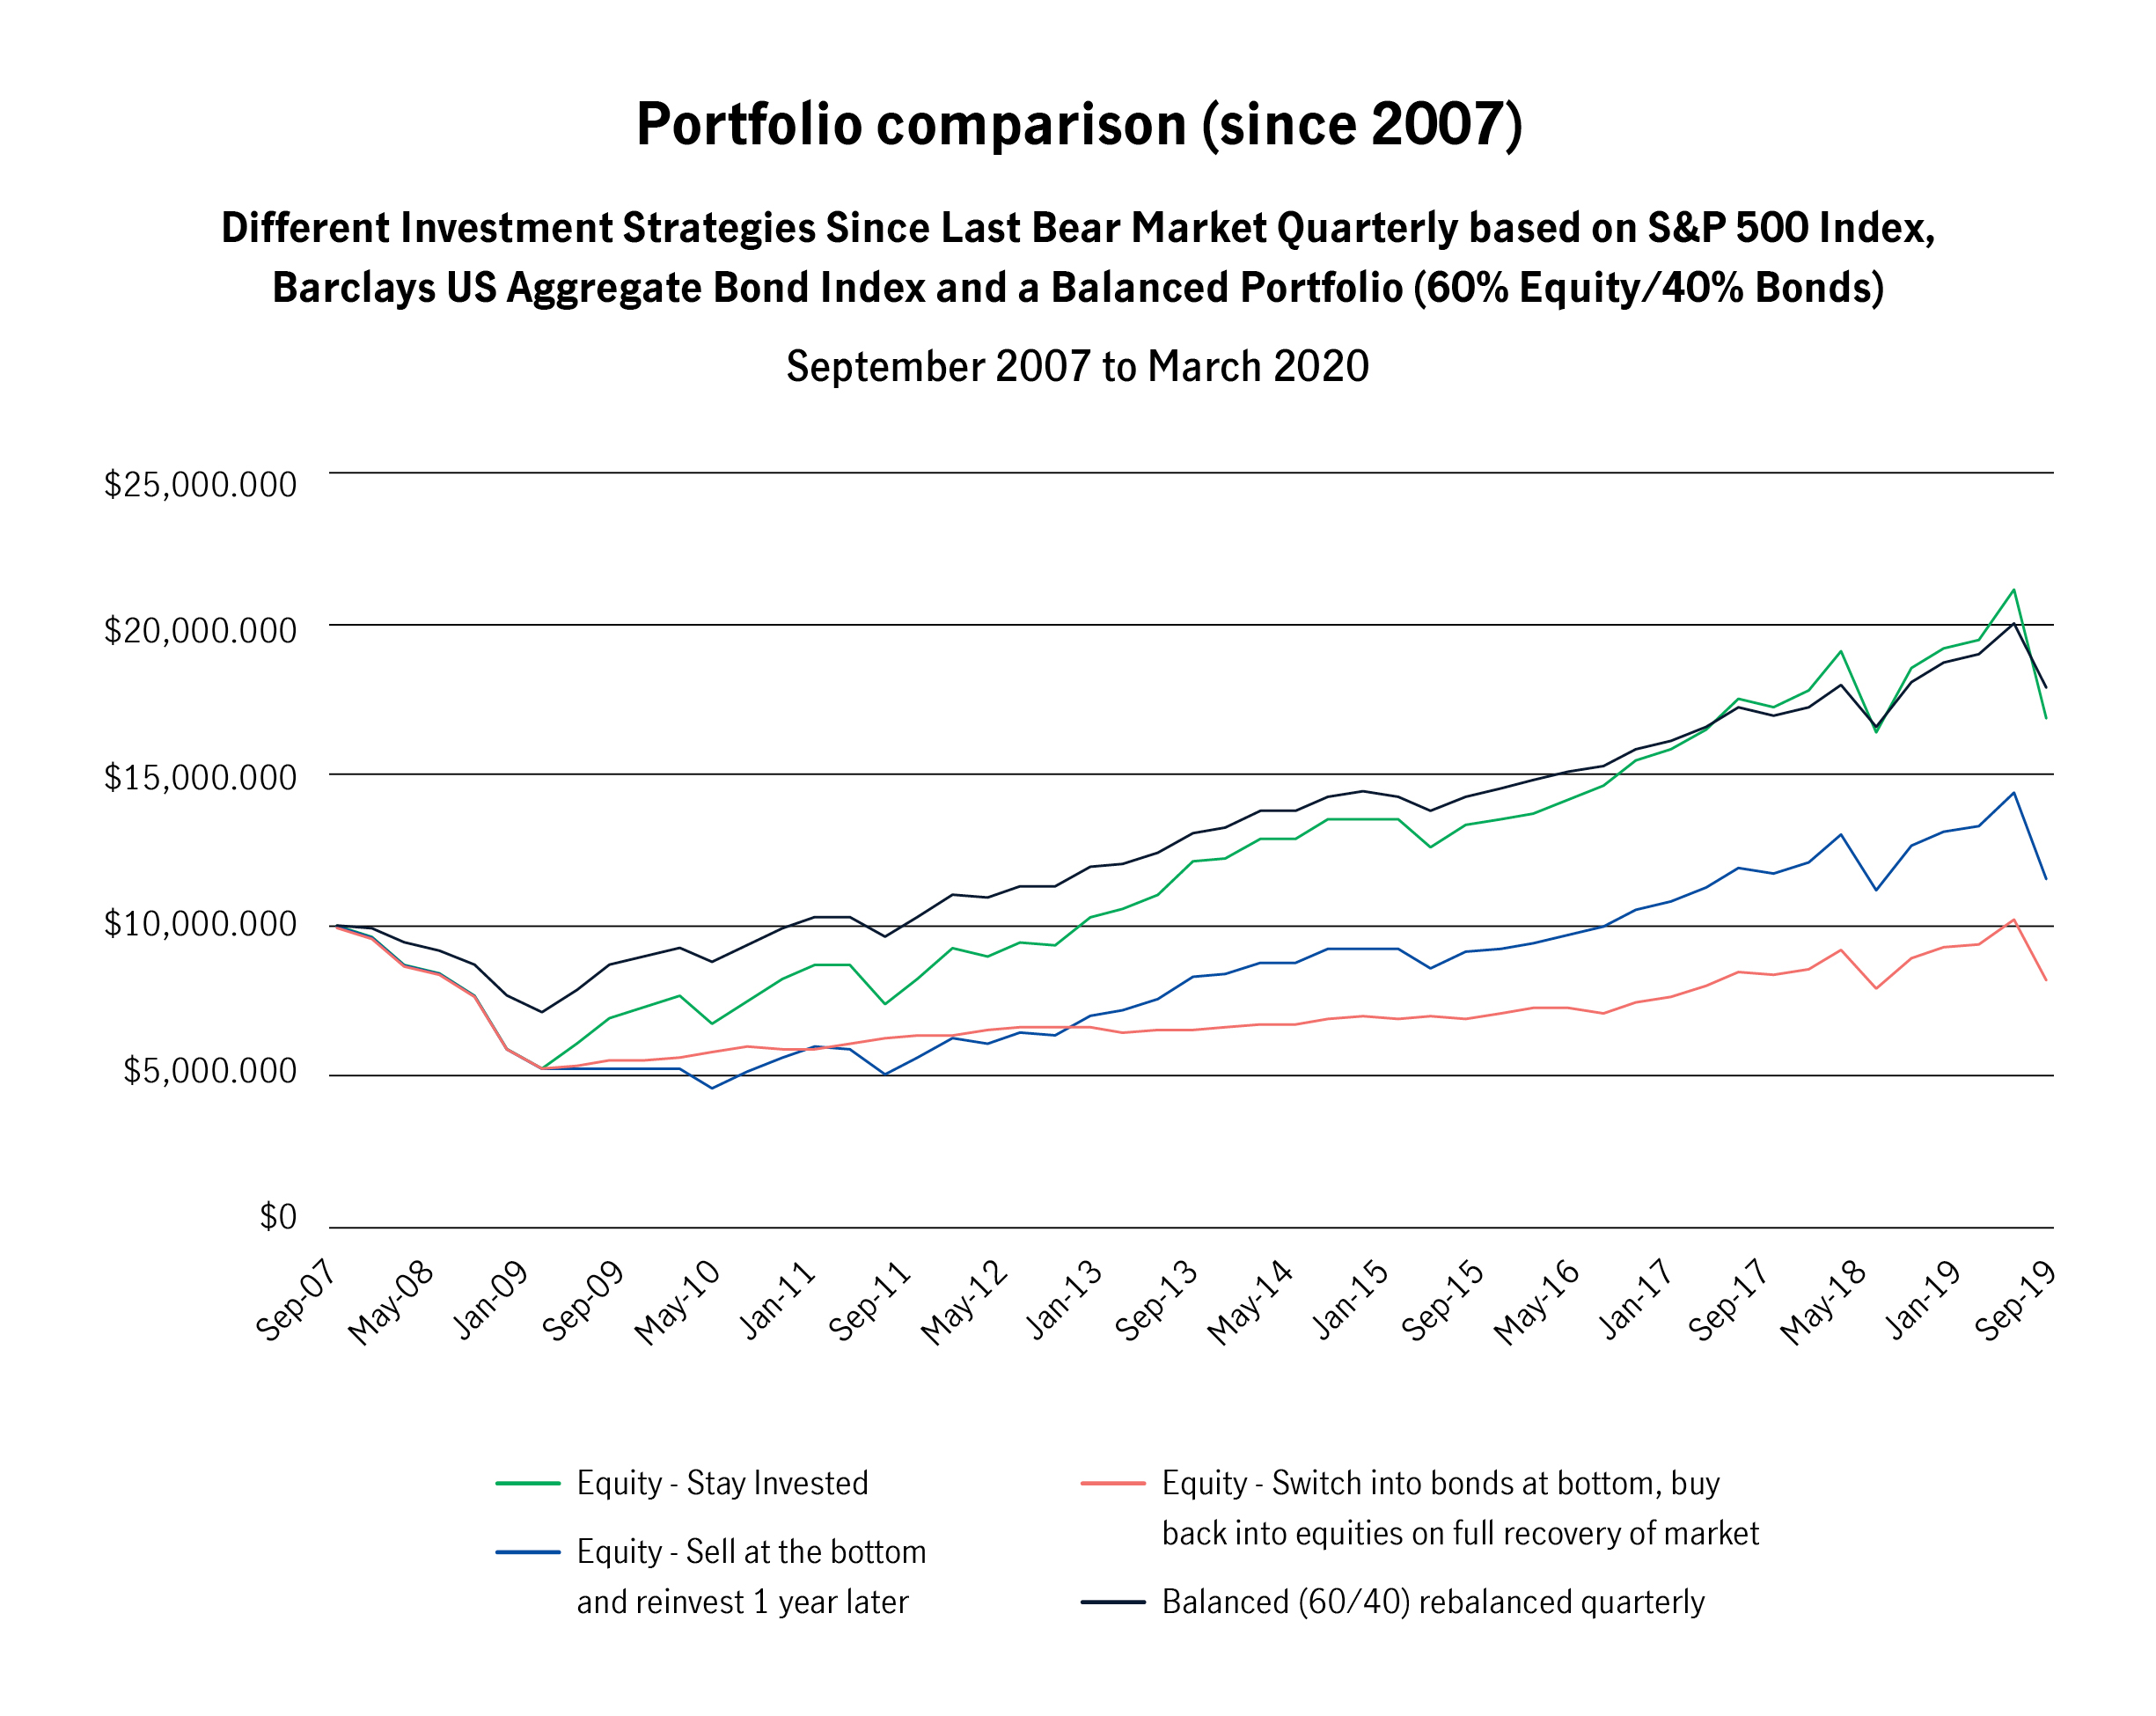 Comparison of different approaches to staying invested and rebalancing (since 2007)